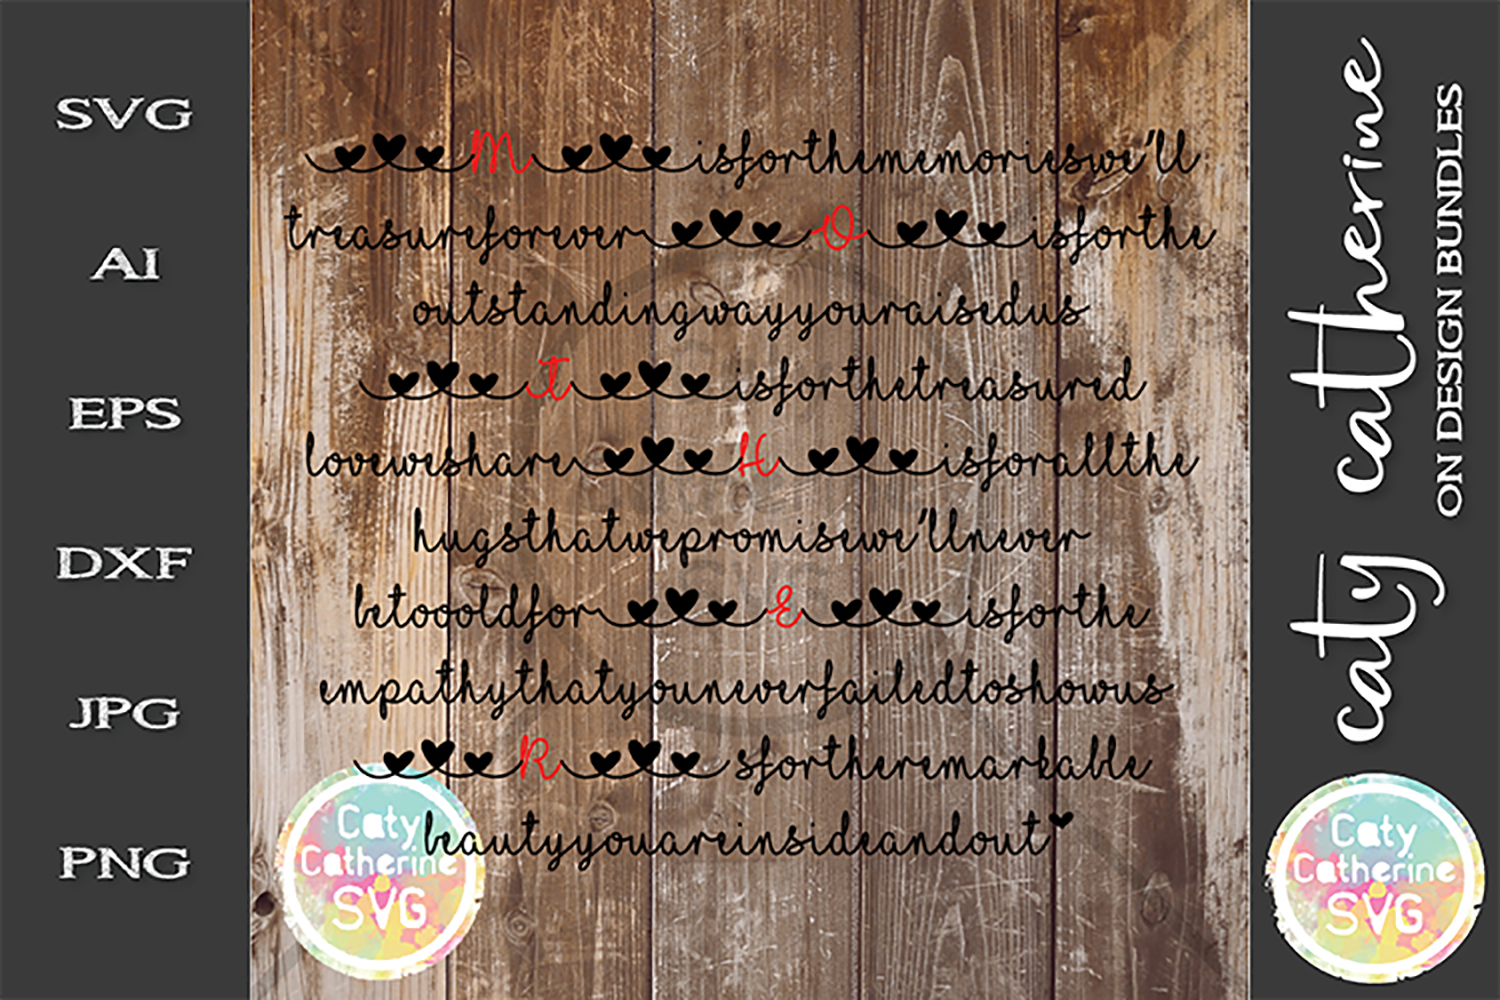 M Is For Mother's Day Poem From Us SVG Cut File example image 1